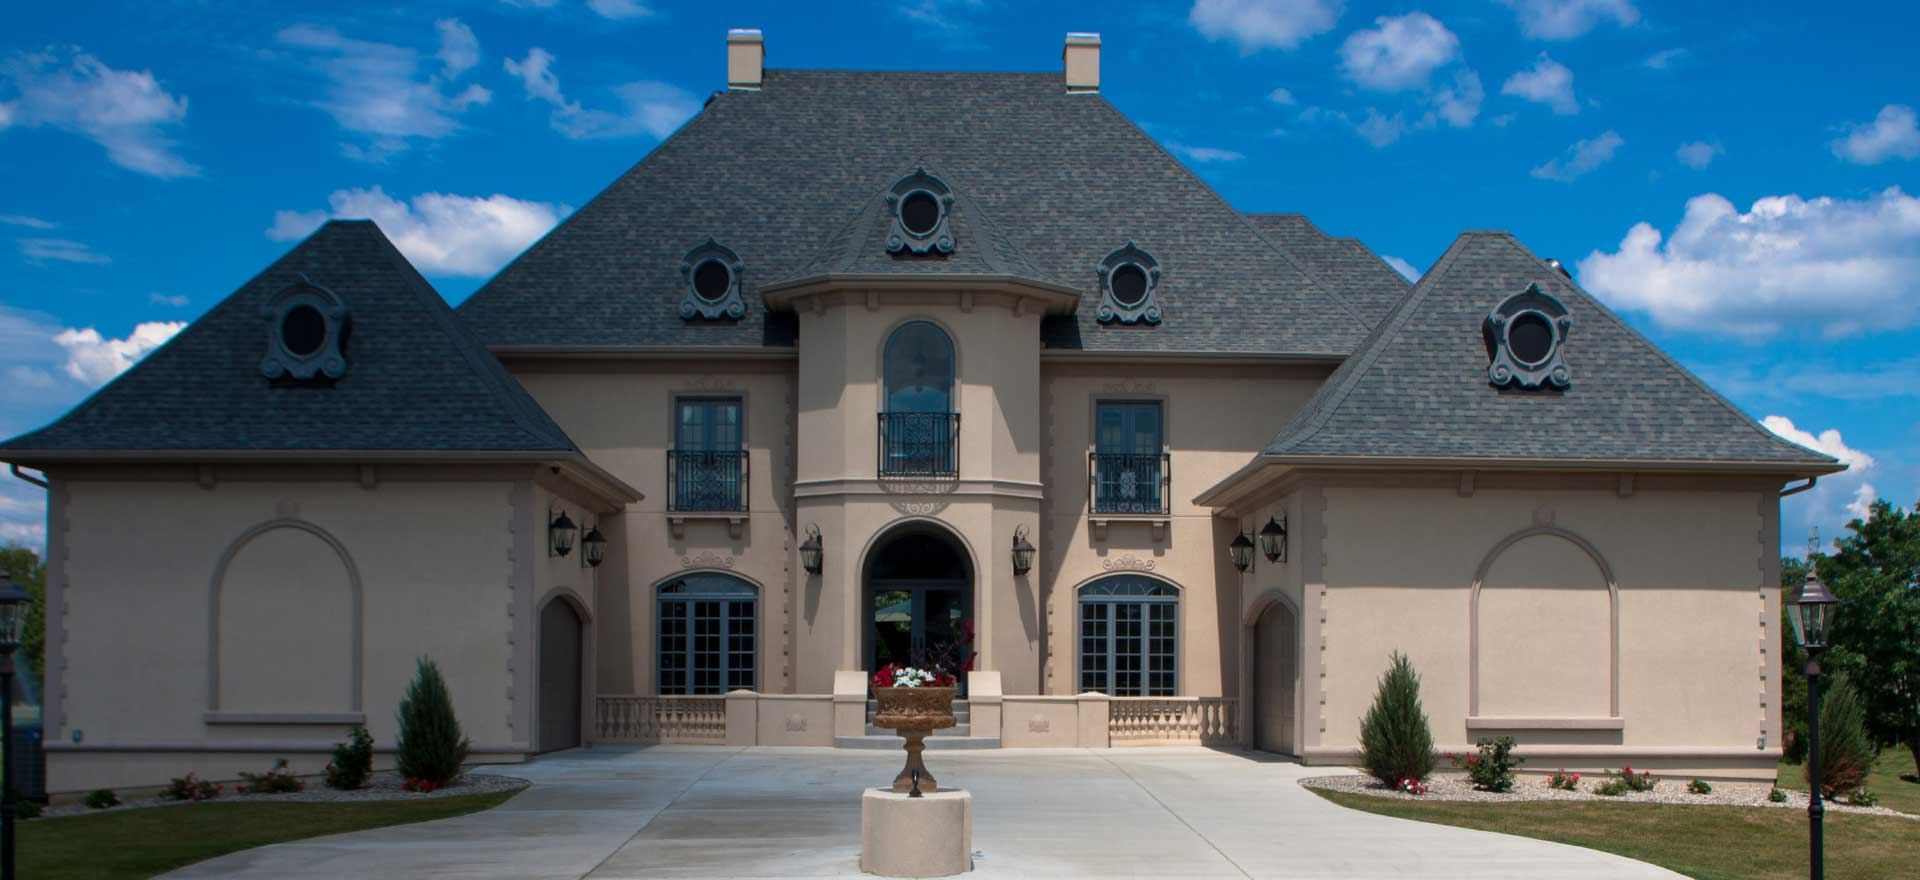 Buzby builders michigan s premier luxury home builder for House builders in michigan